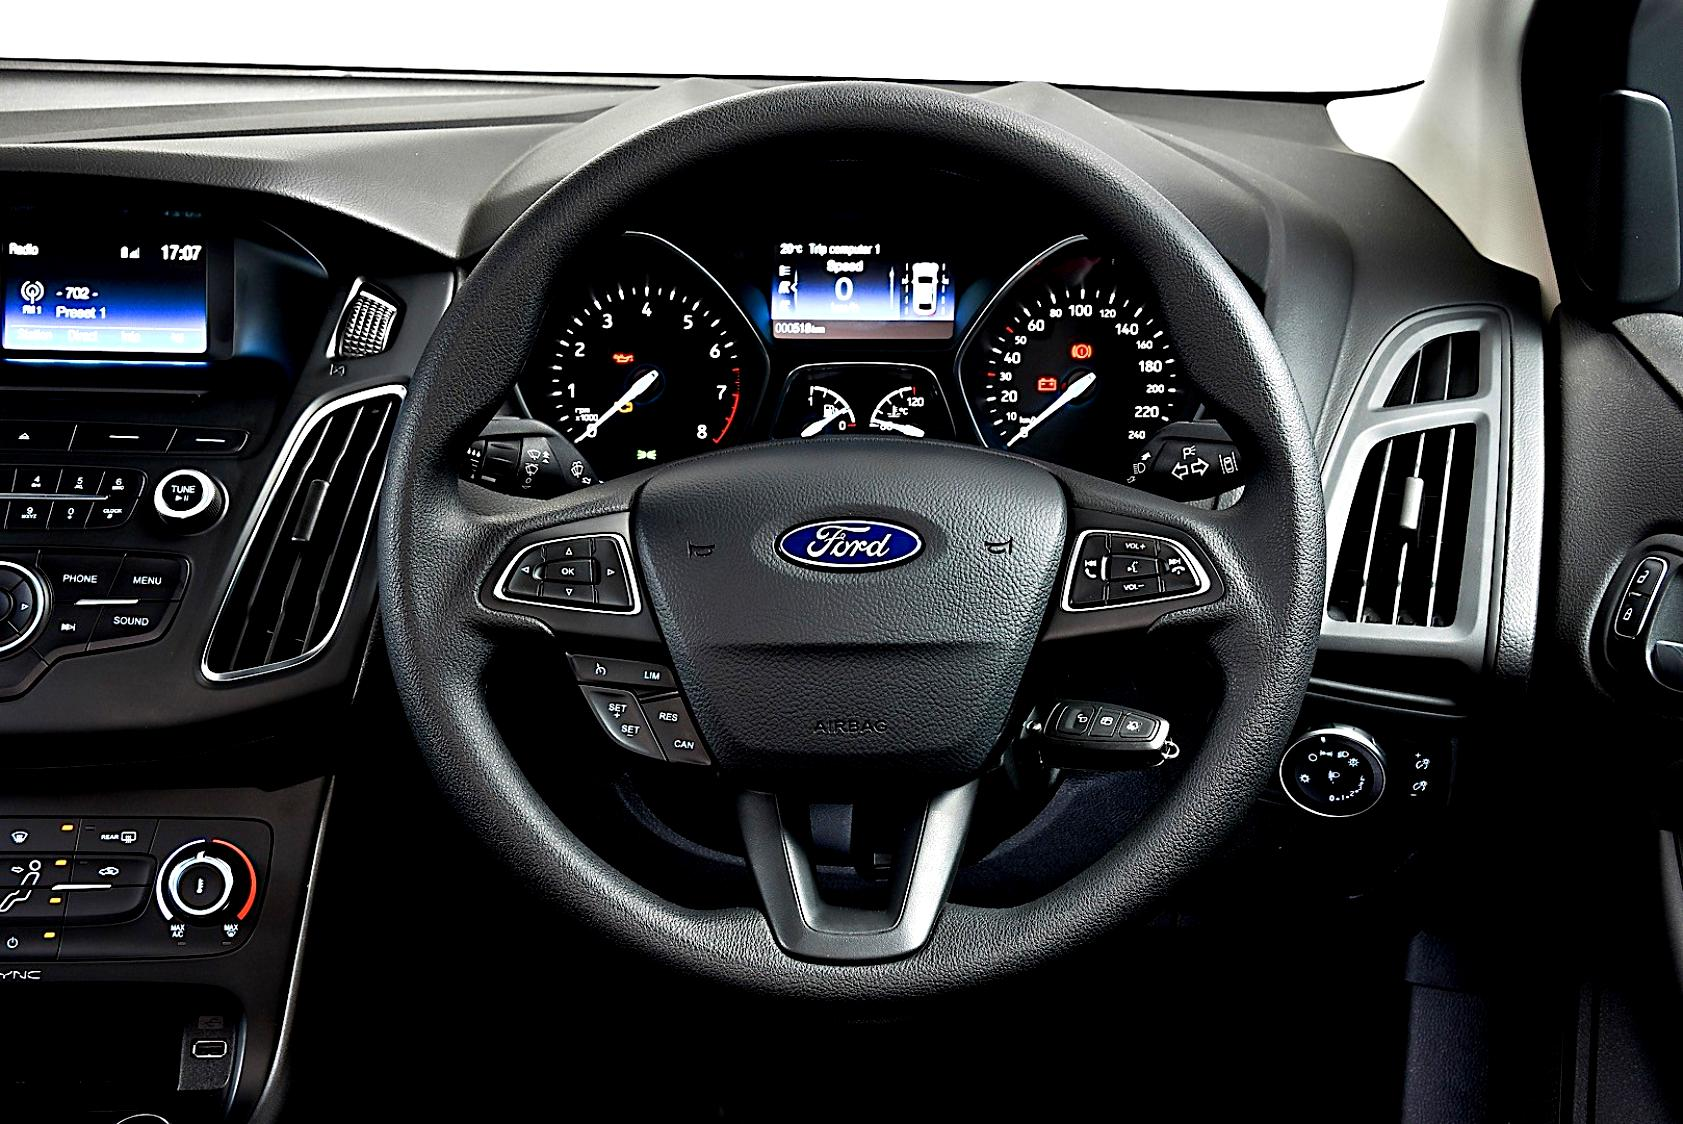 Ford Focus Sedan 2014 #64